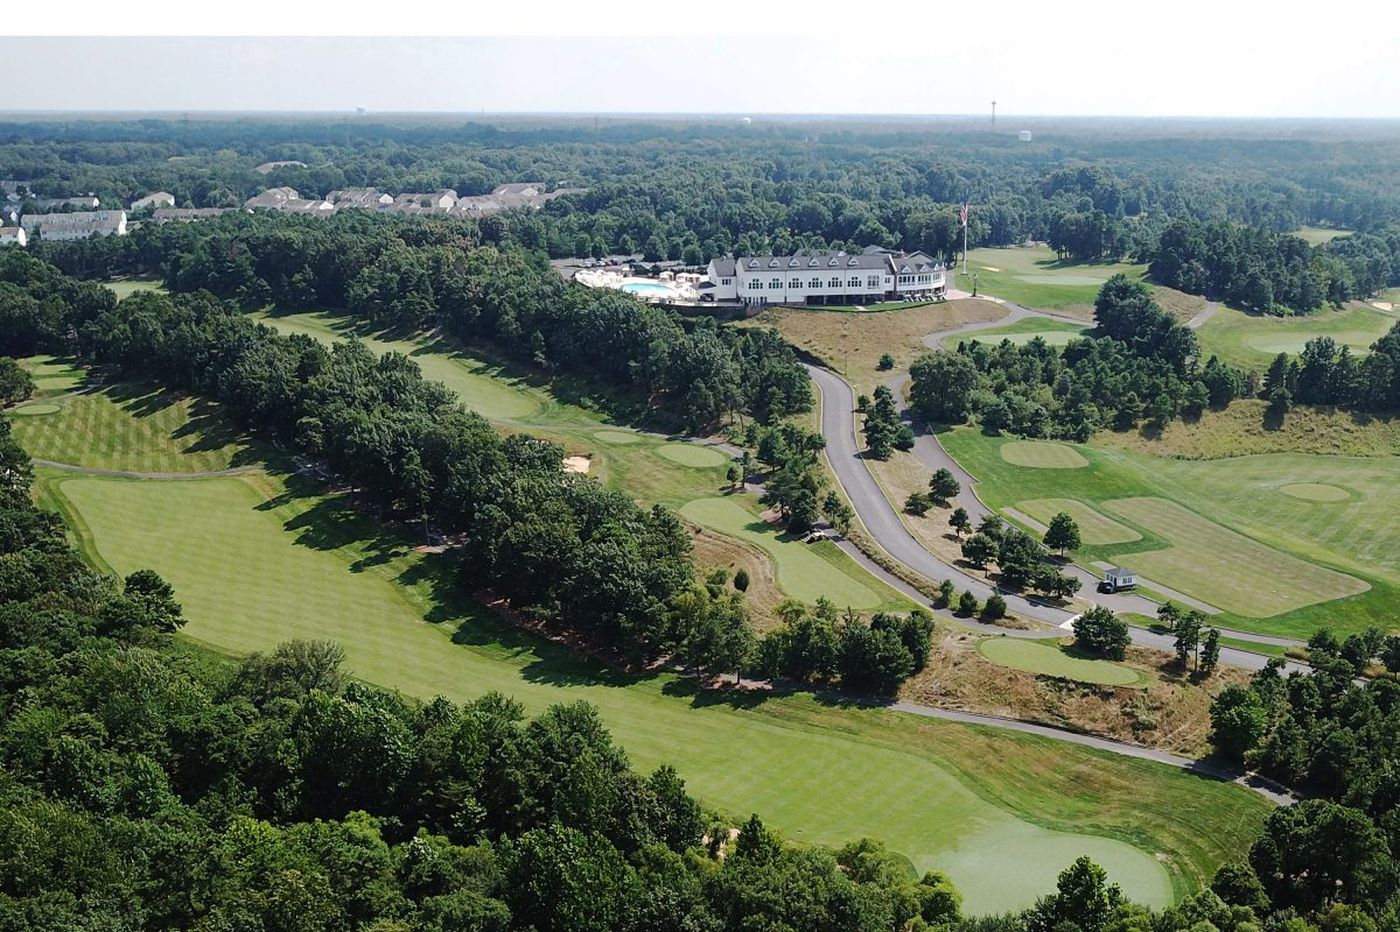 Trump's 'opportunity zones' could give his South Jersey golf club a tax break